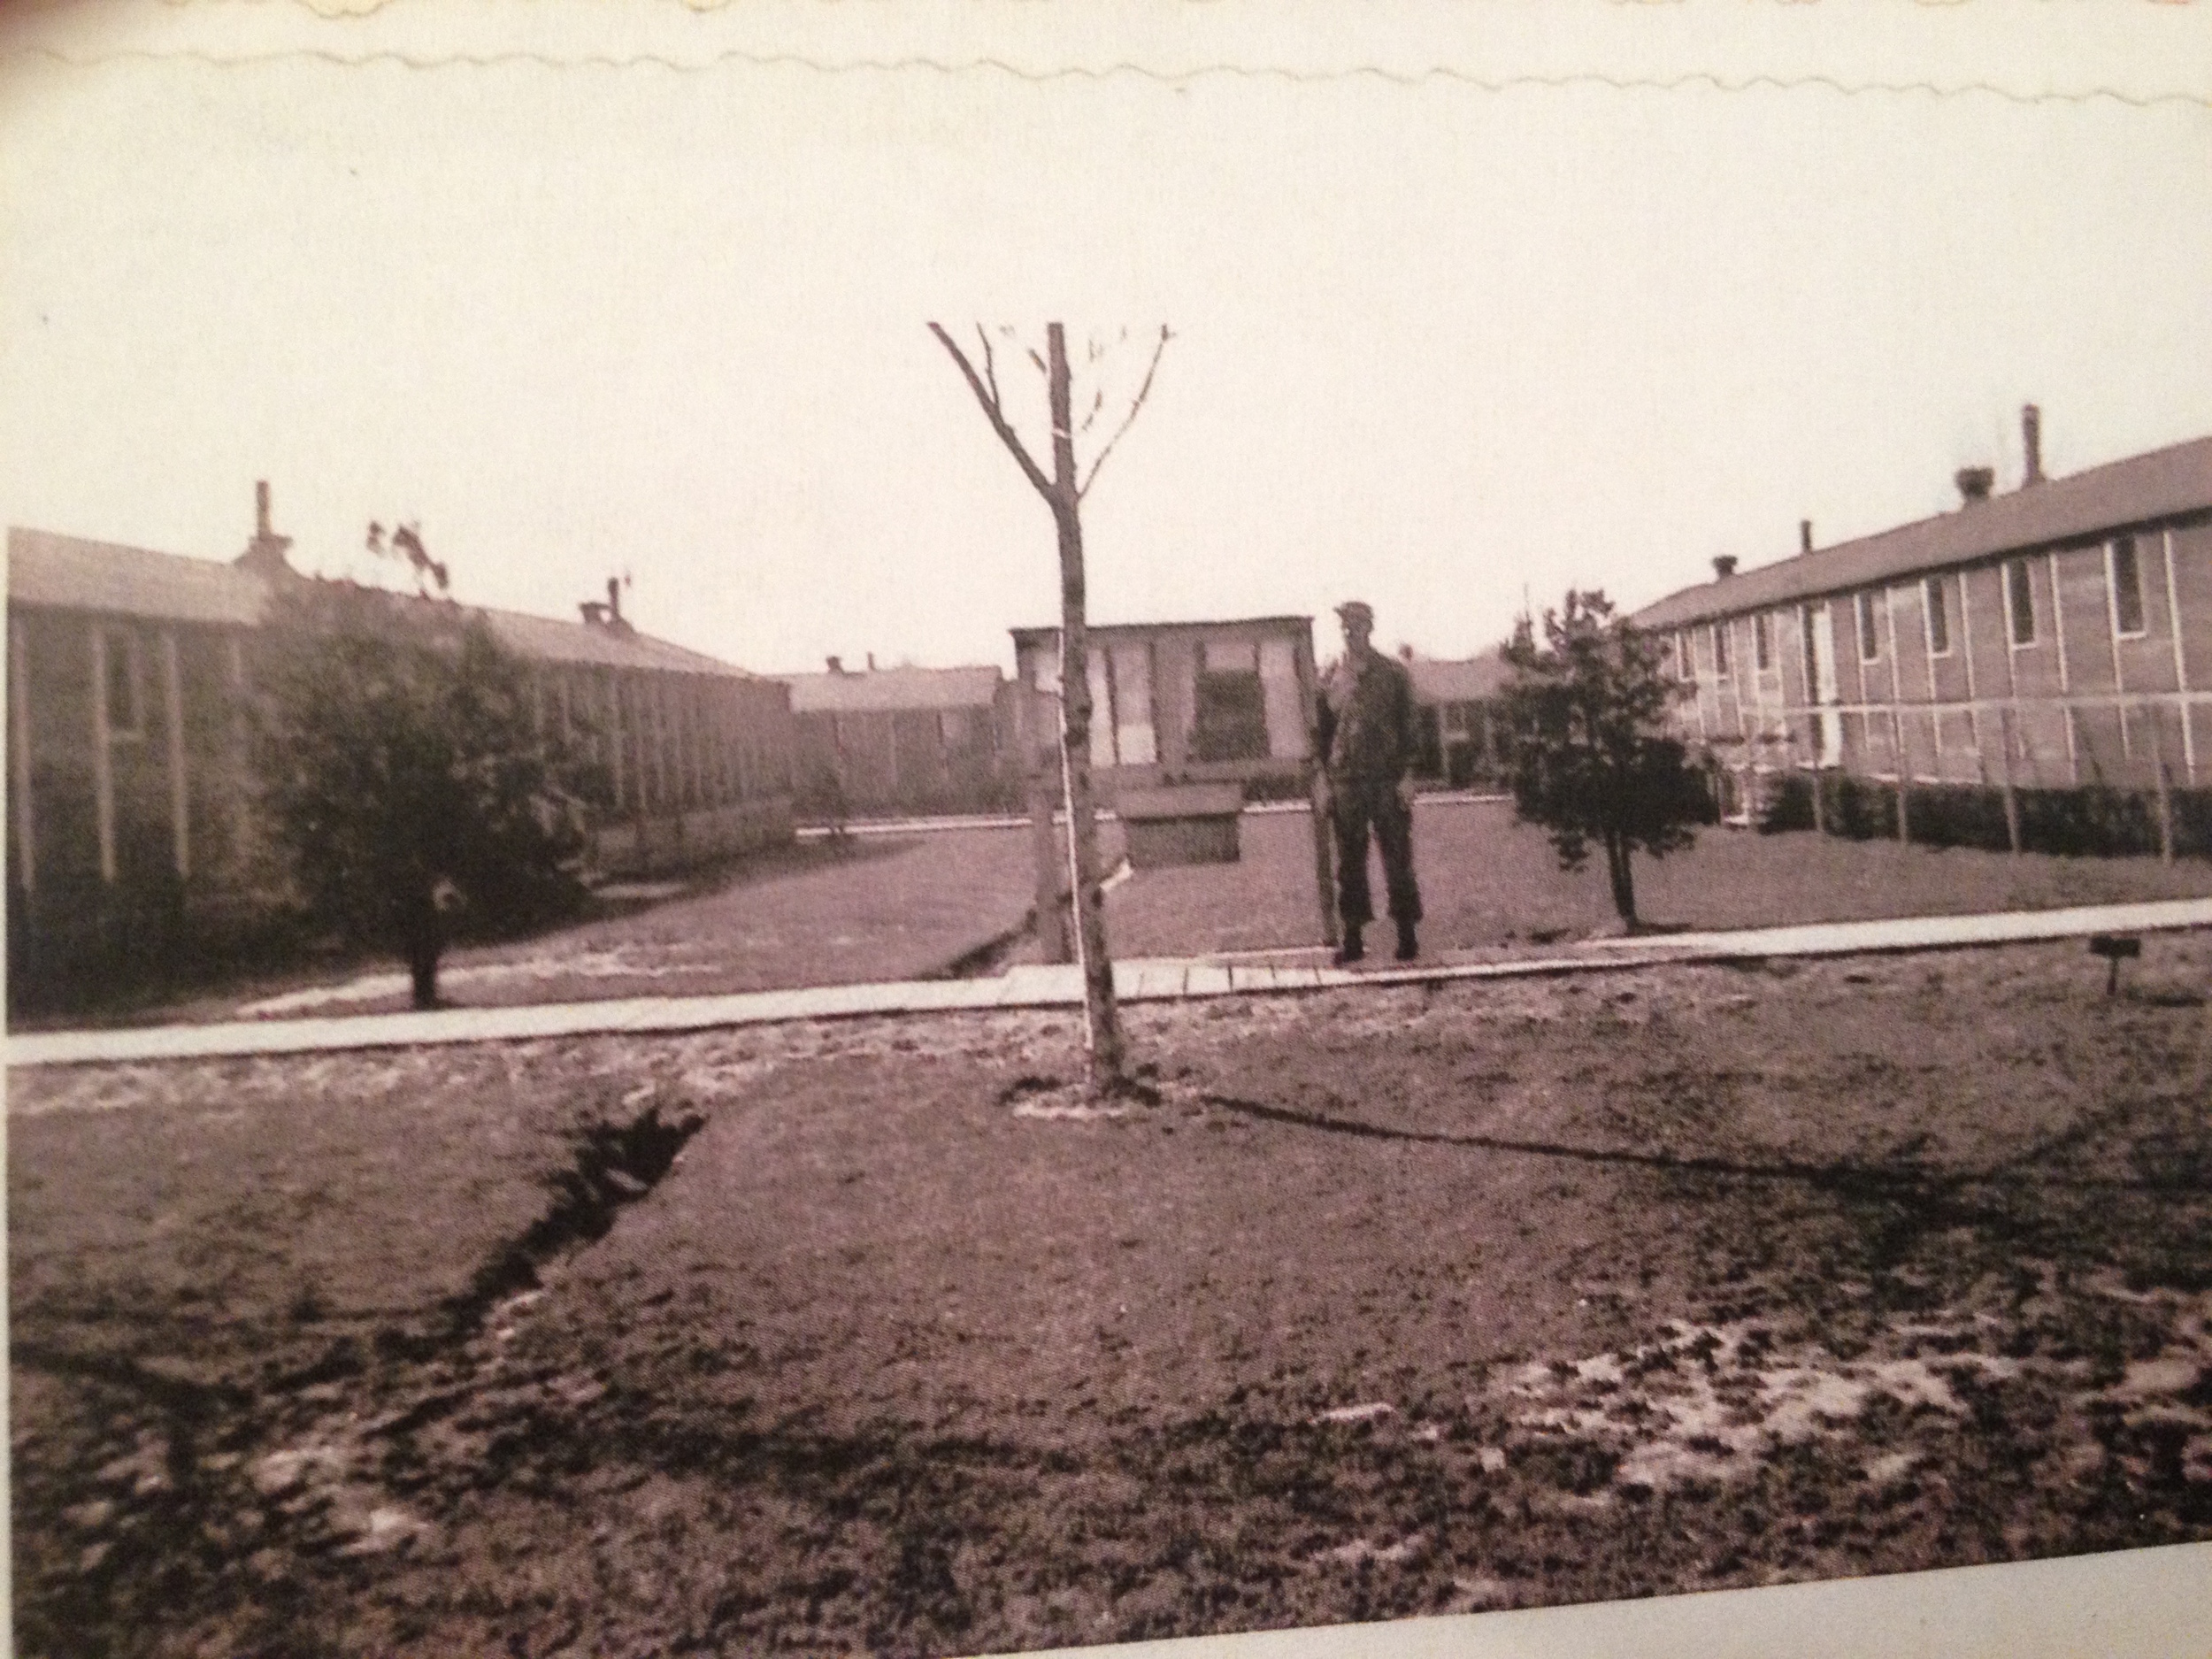 Some of the barracks at P.O. Box 1142.  Photo courtesy of Bill Cooke.